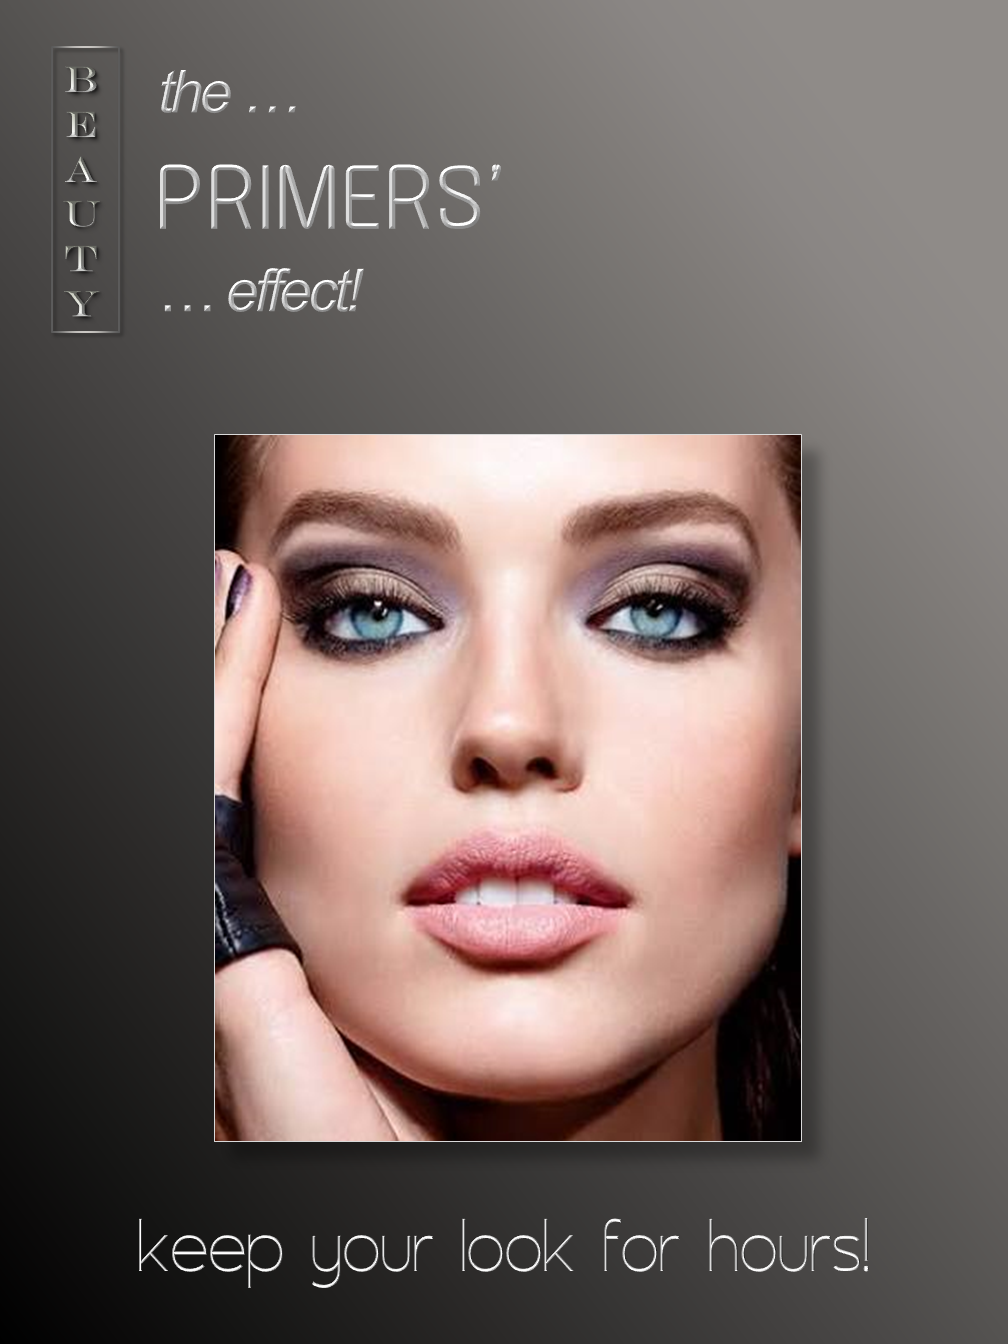 Primers' Effect